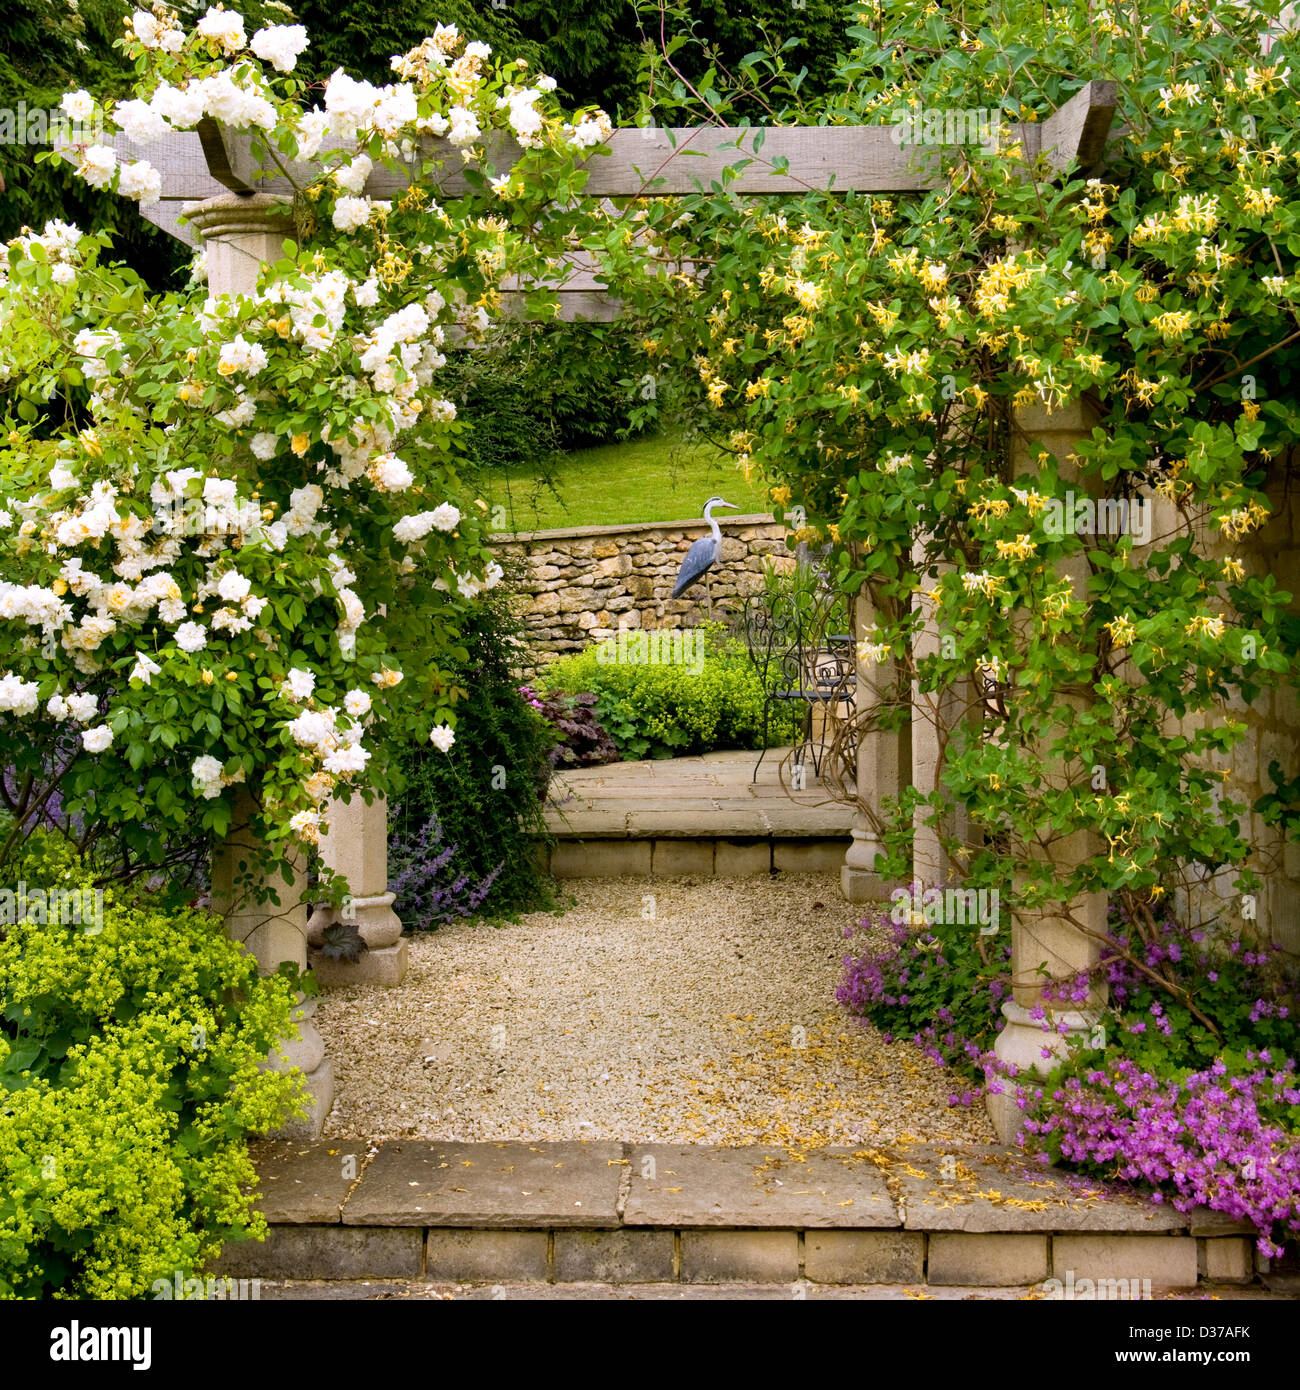 A Garden Pergola With Roses And Honeysuckle   Stock Image